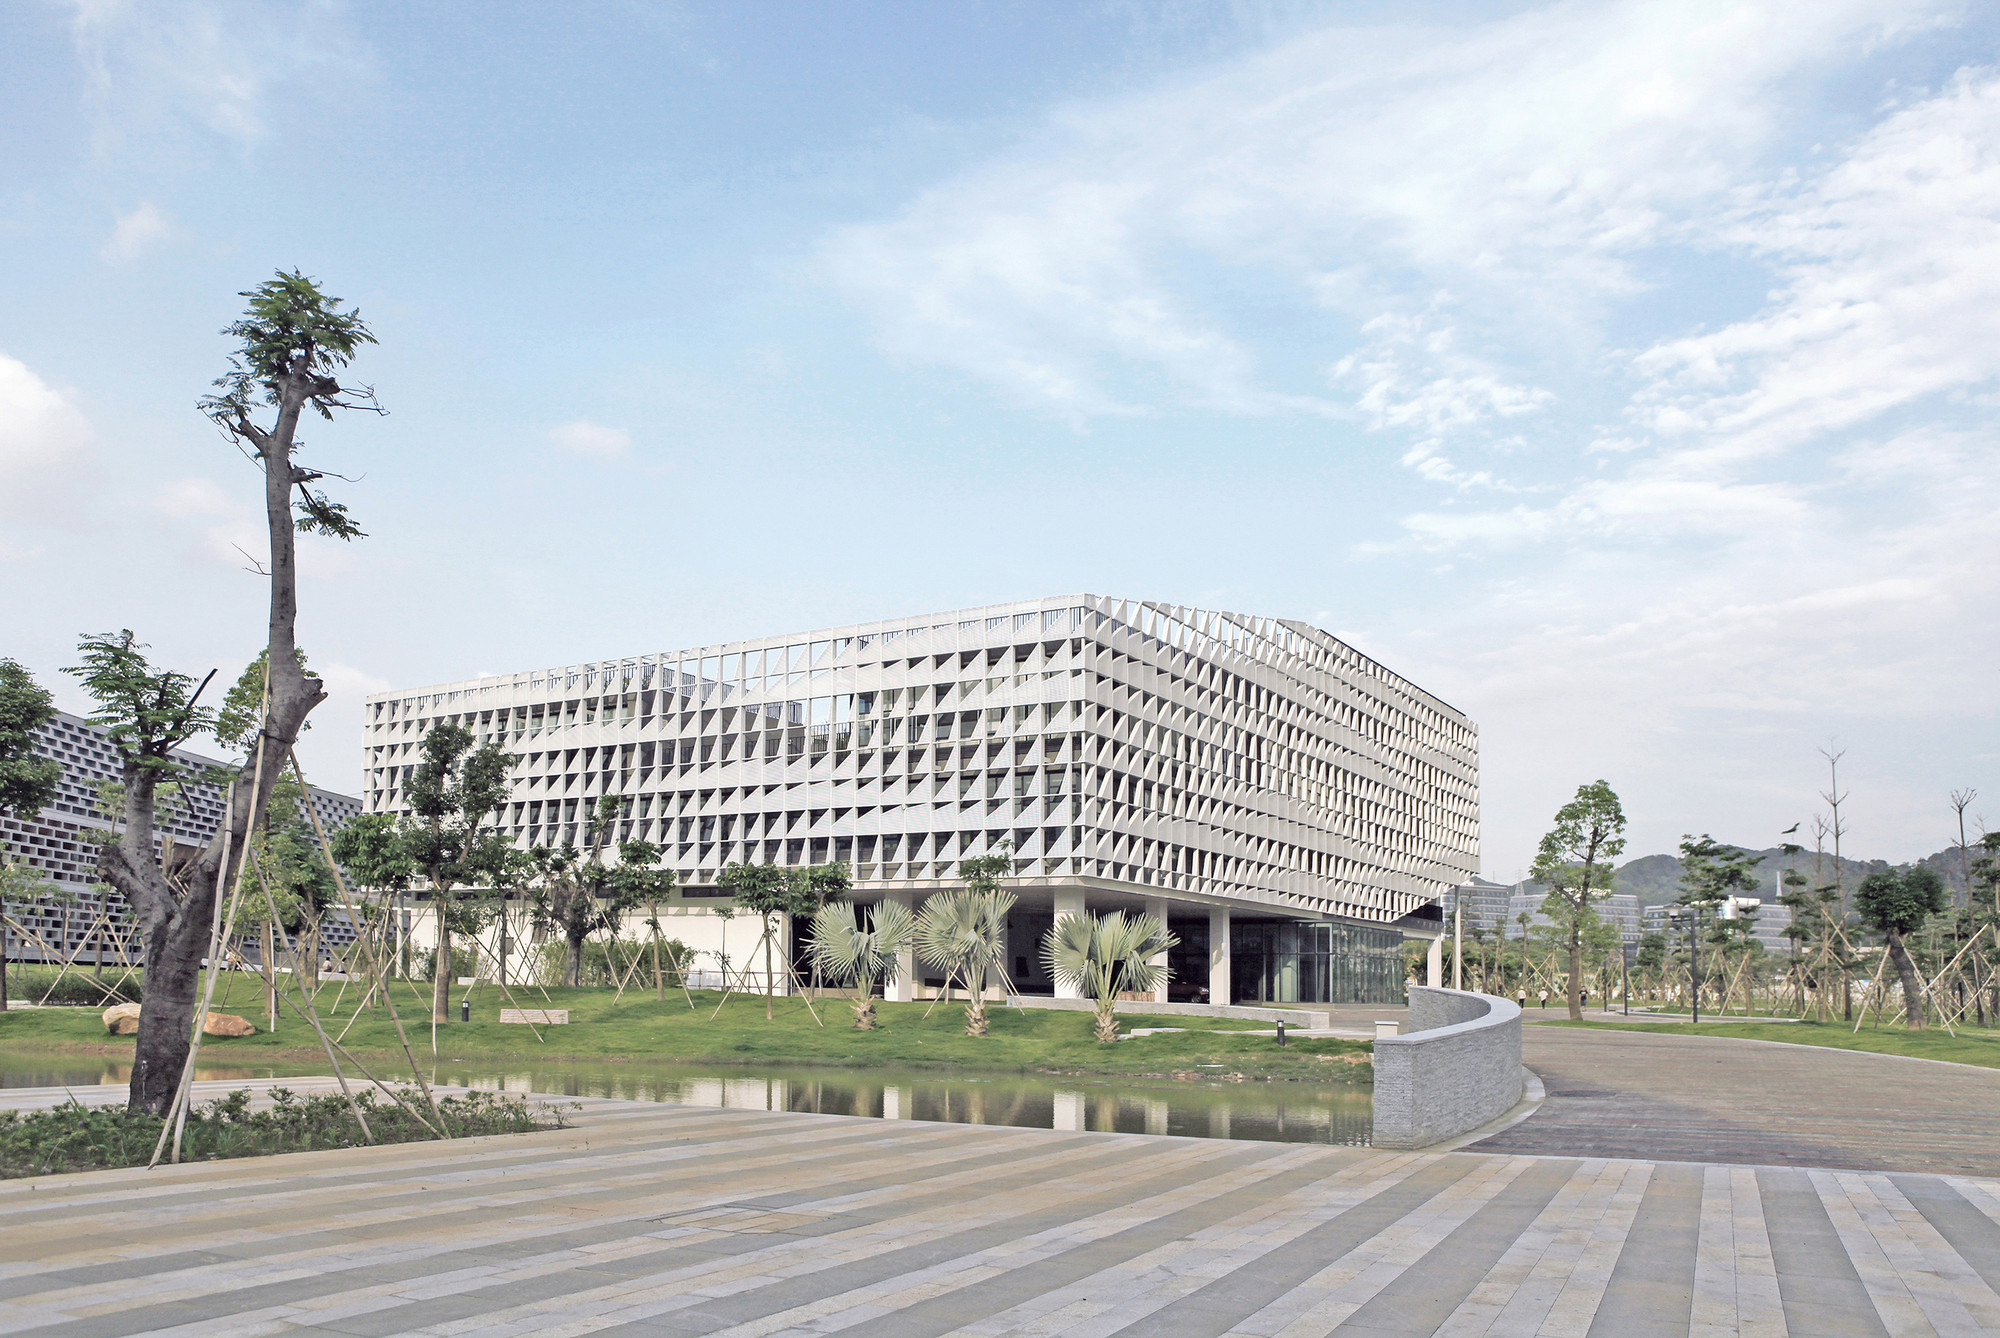 Administrative Office Building of South University Of Science And Technology Of China / Zhubo Design Zstudio, Courtesy of Zhubo Design Zstudio